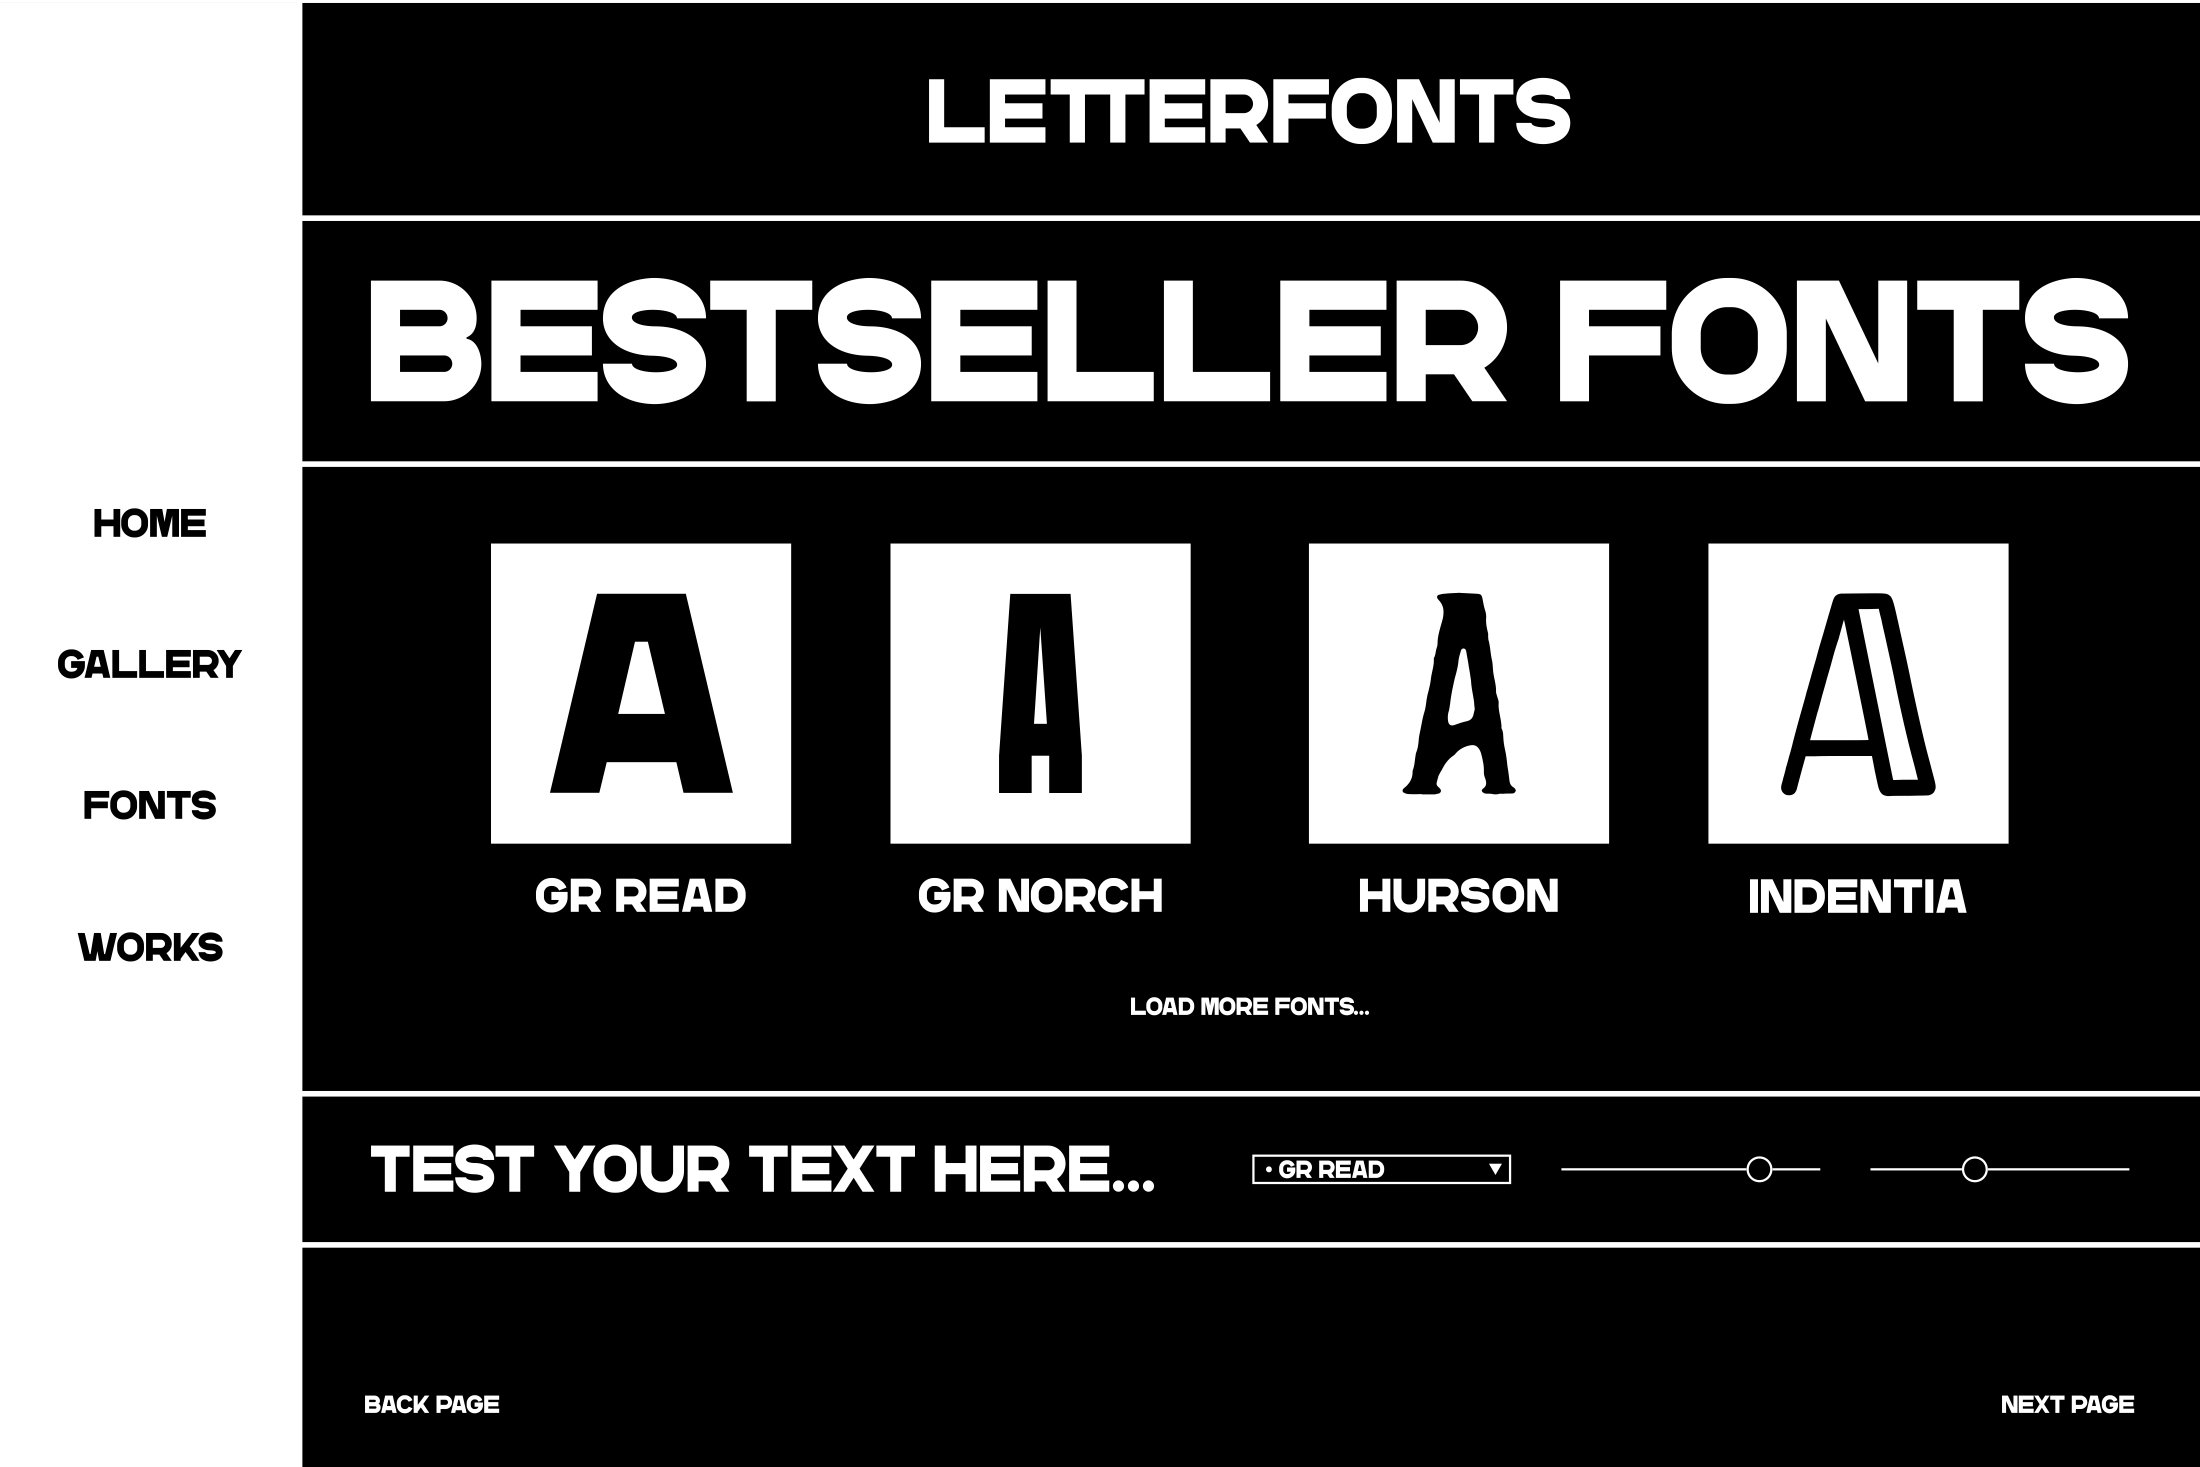 GR Norch - Sports Display Font example image 12